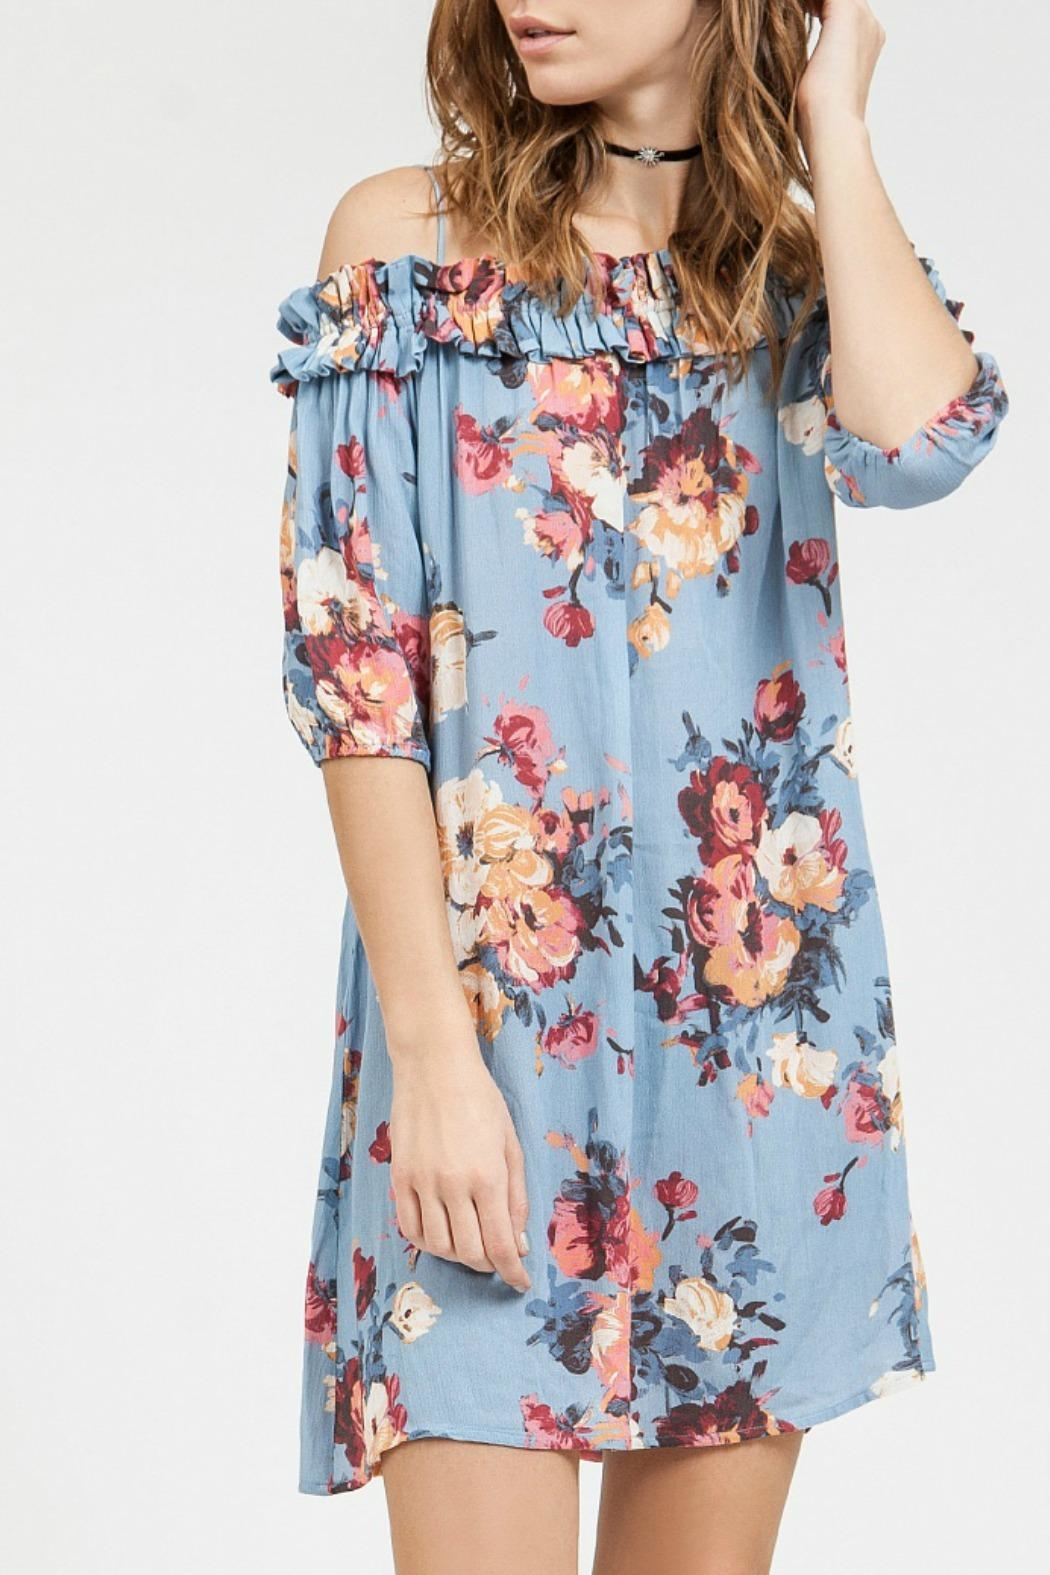 Blu Pepper Floral Off Shoulder Dress From New Jersey By Making Waves